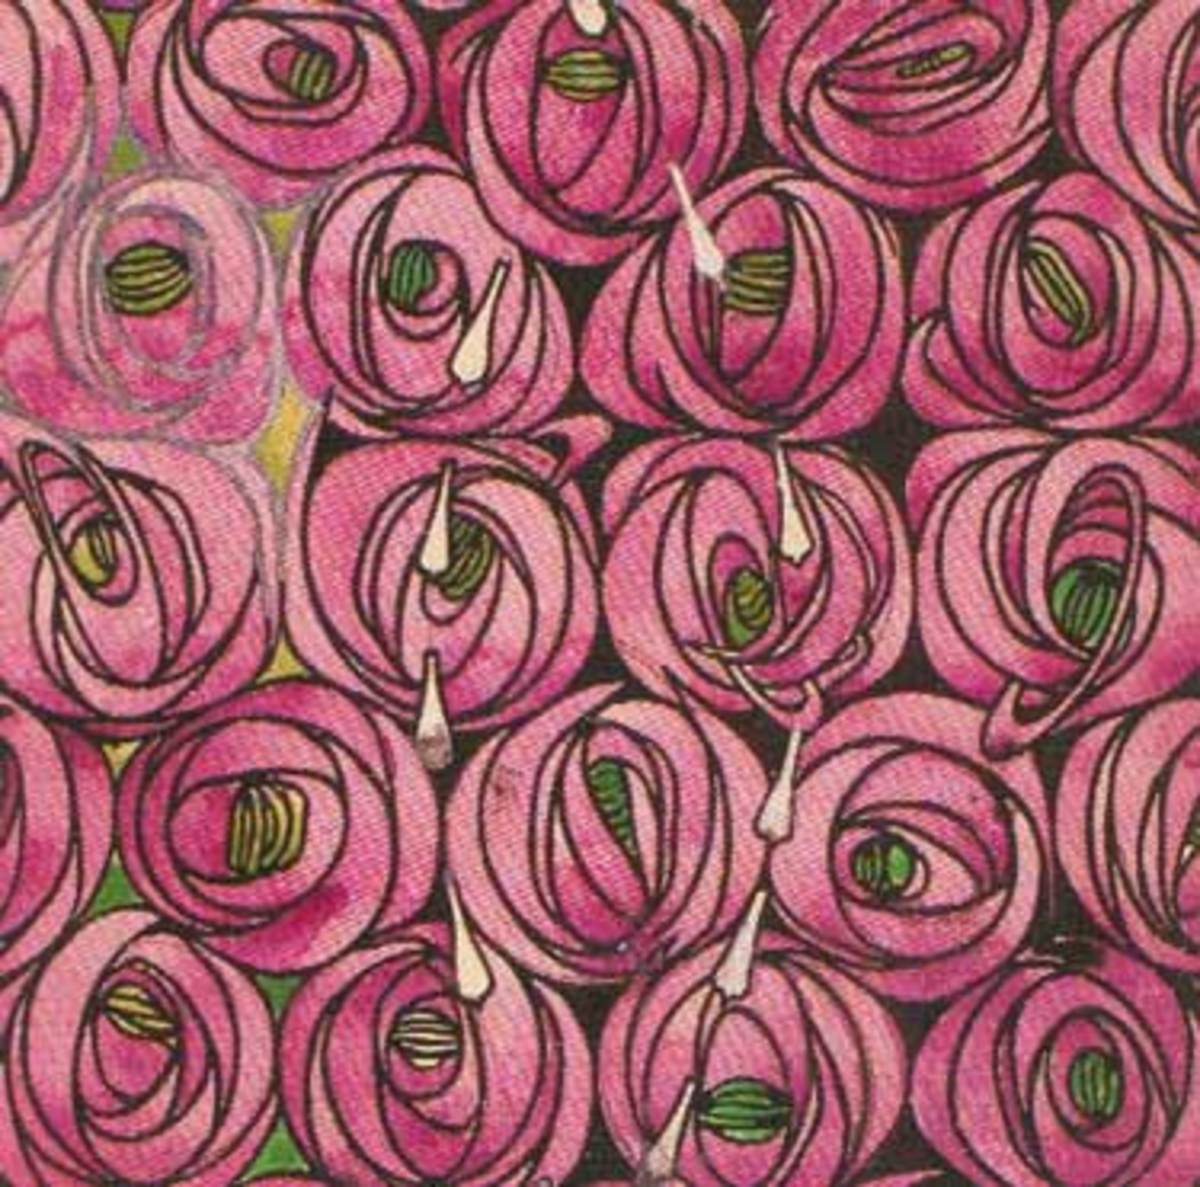 Mackintosh Roses - these became a sort of logo for Mackintosh and were used in furniture design, murals, illustrations and on printed materials as well.